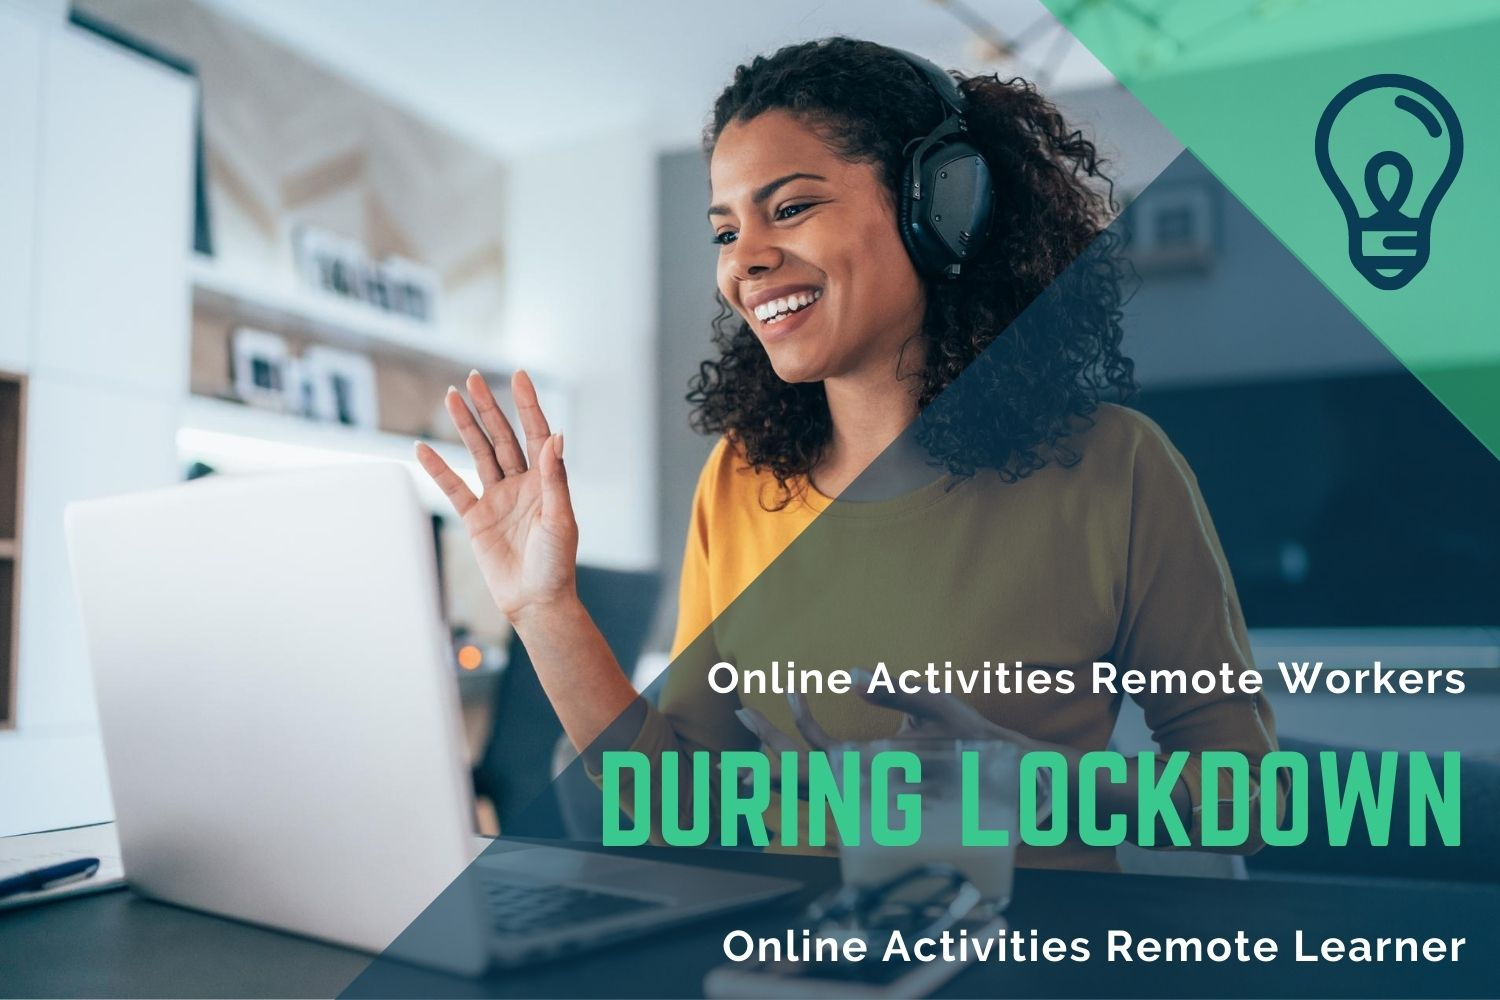 Online Activities Remote Workers & Learners Did During Lockdown